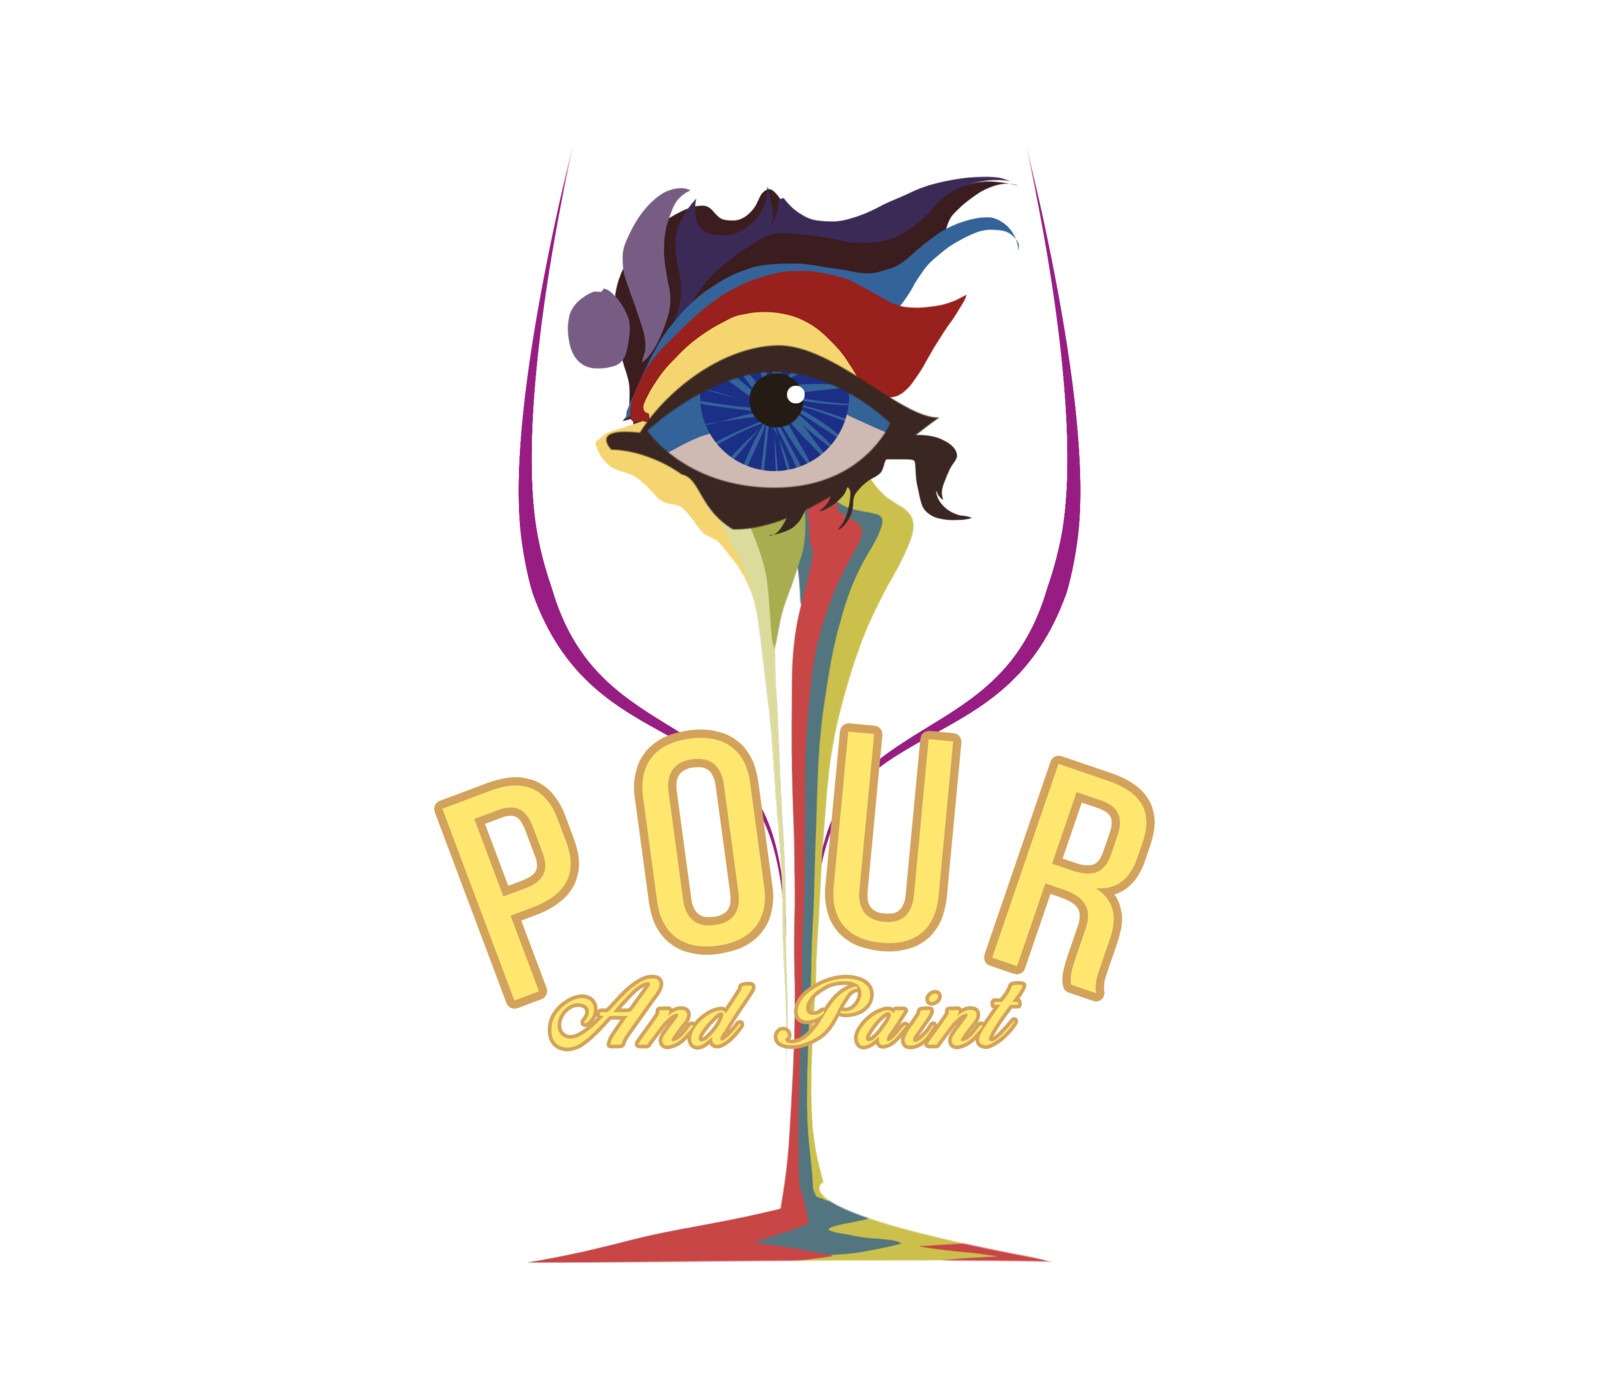 pour and paint logo concept